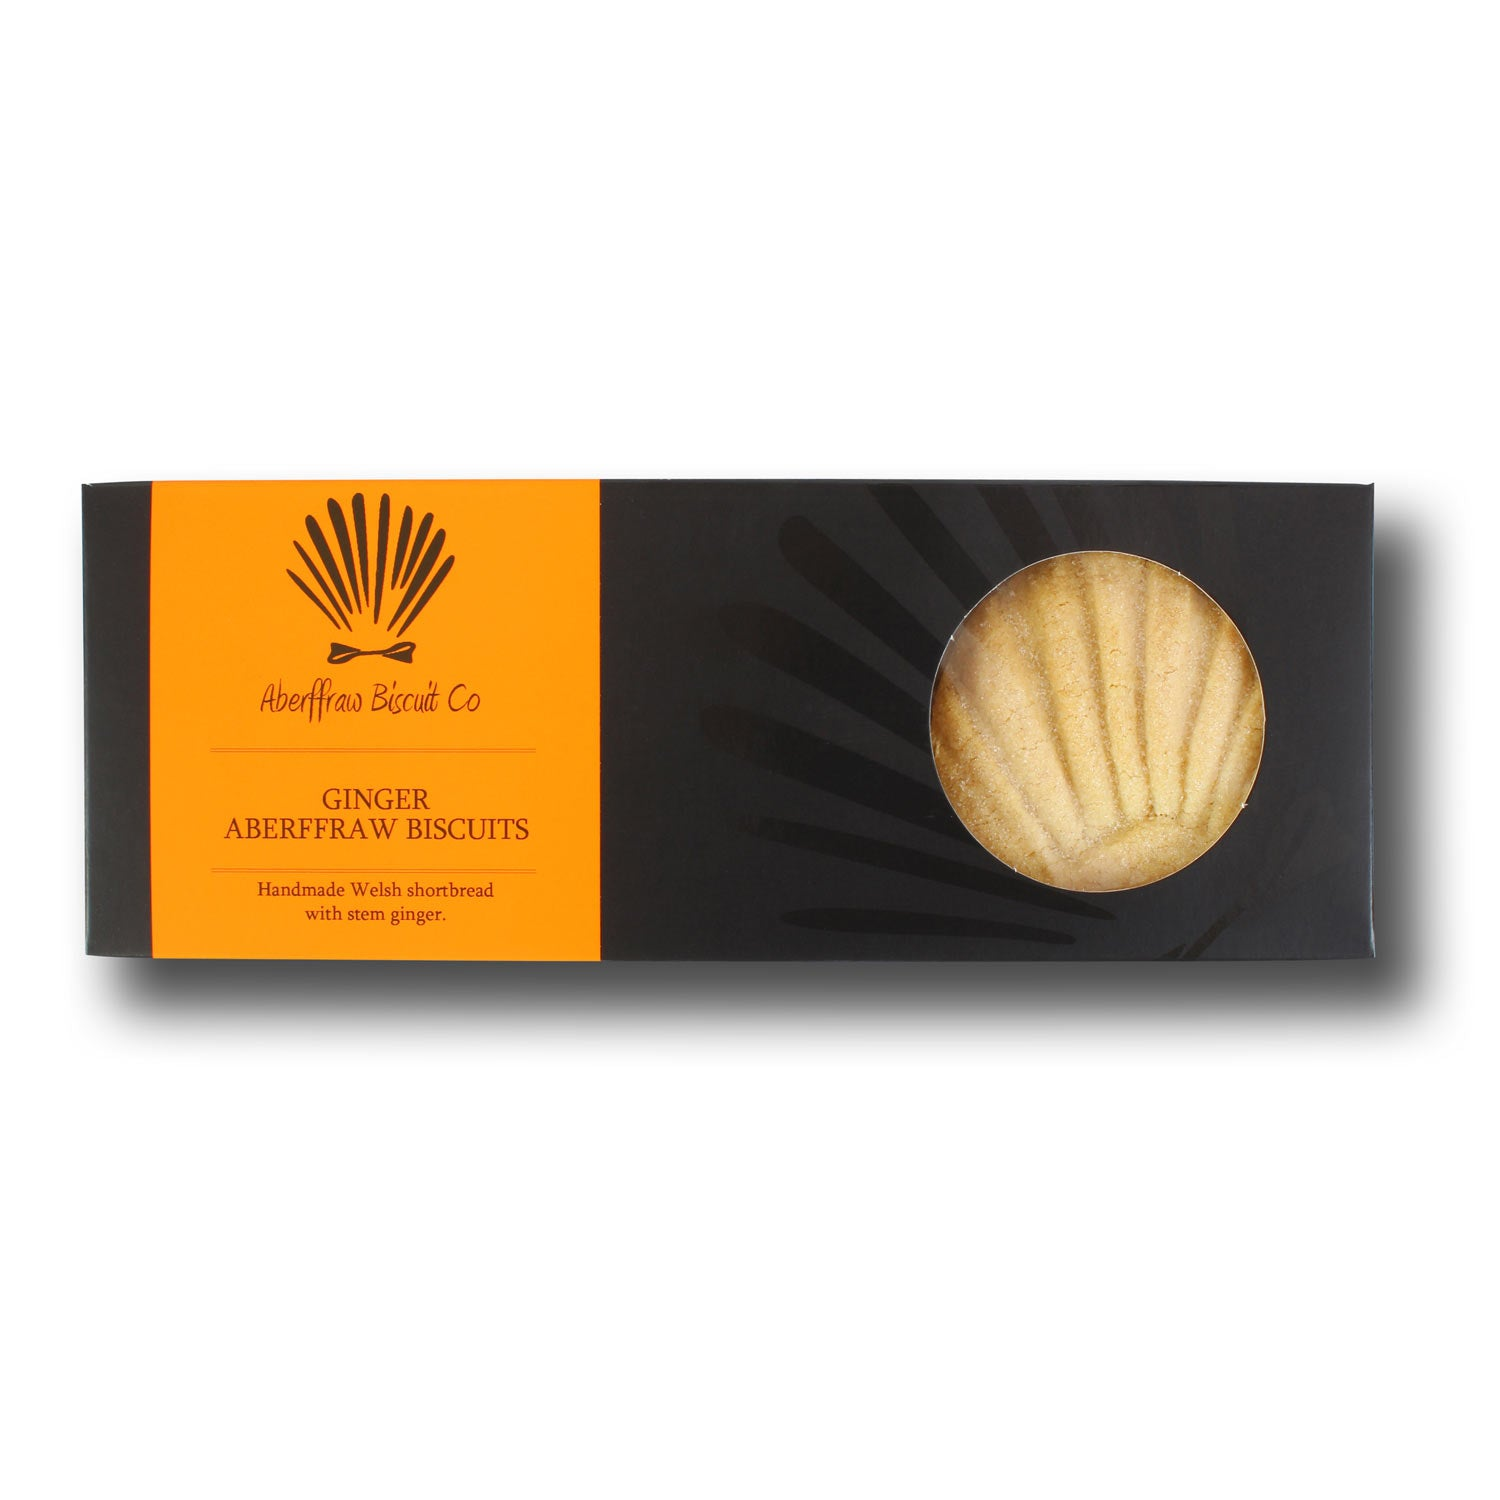 Gift Box - Traditional Aberffraw Biscuits - Ginger